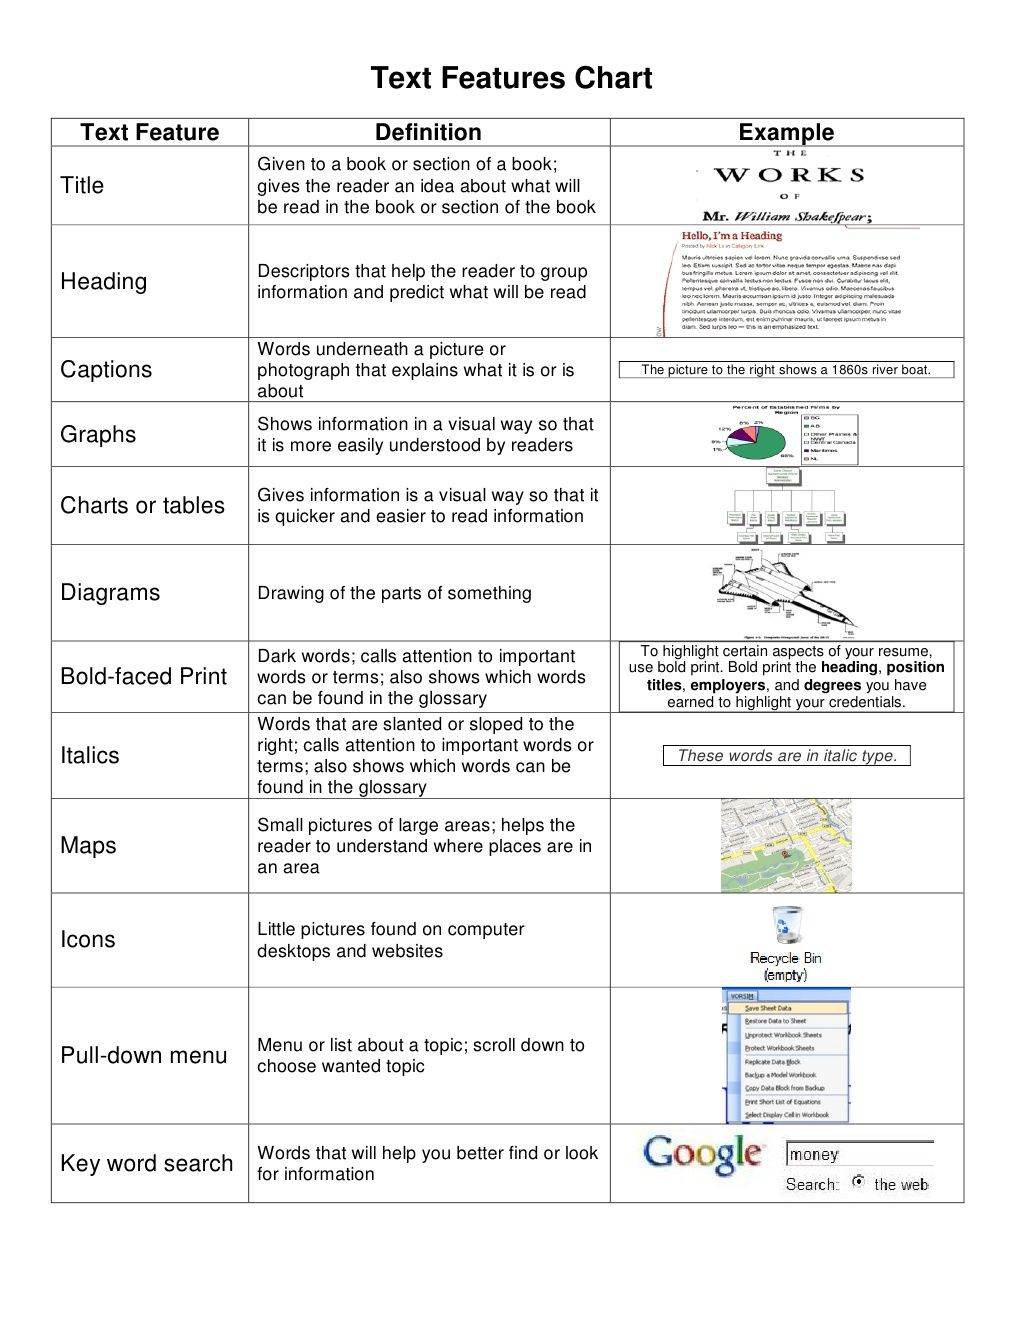 medium resolution of text-features-chart by NWEMS via Slideshare   Text features